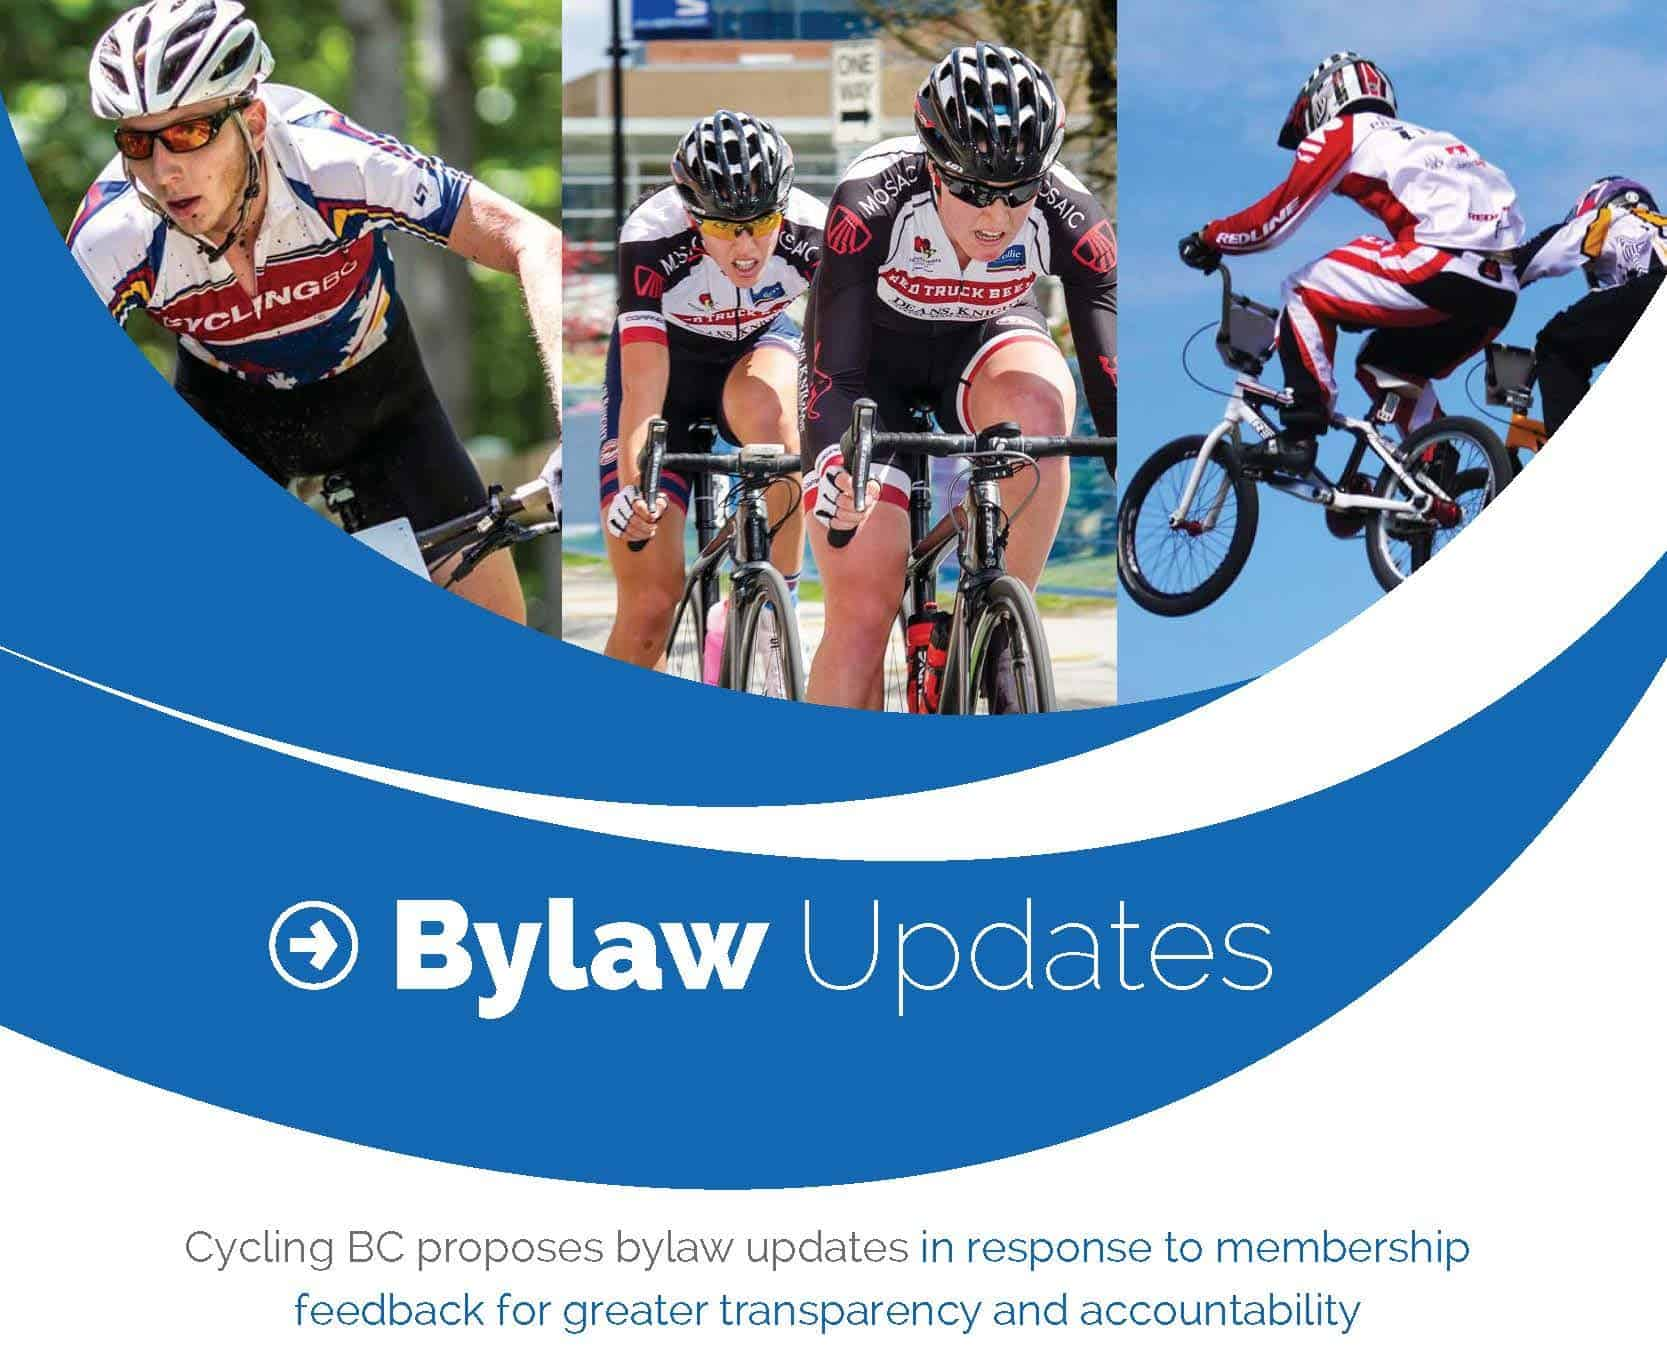 Cycling BC proposes bylaw updates_short